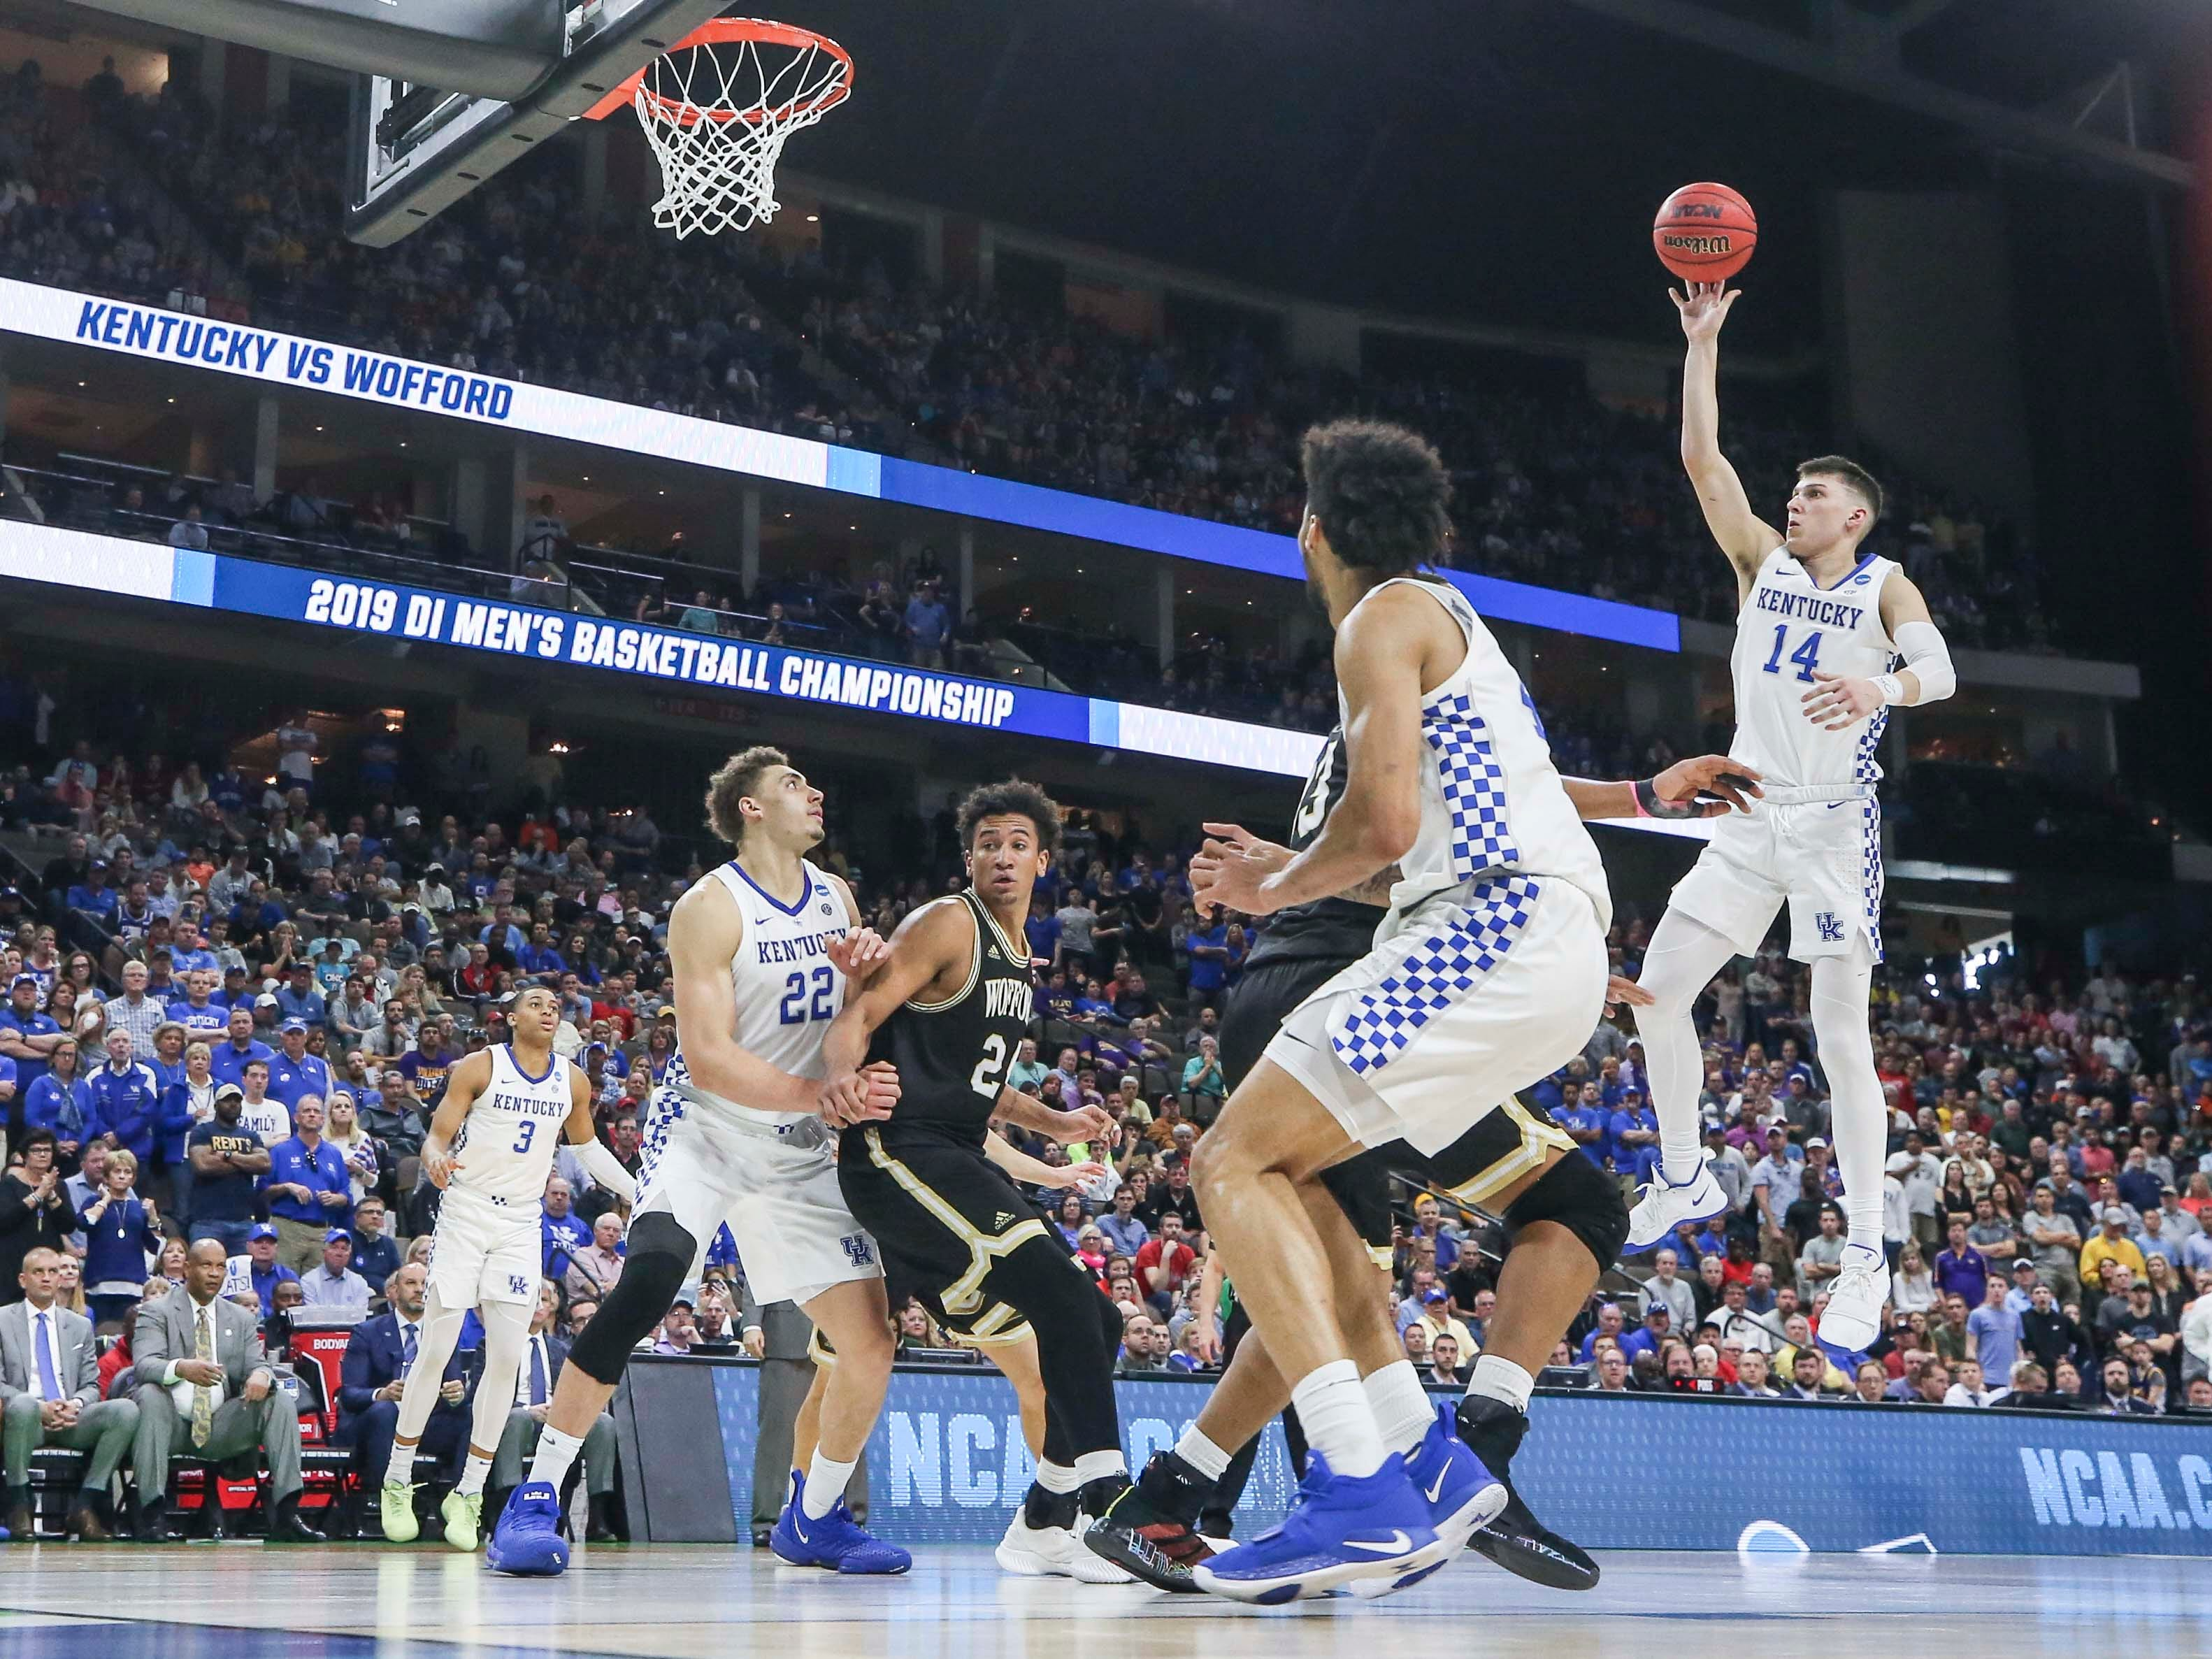 Kentucky's Tyler Herro had nine points and six rebounds with four assists as the Wildcats beat a tenacious Wofford 62-56 in the second round game of the 2019 NCAA tournament in Jacksonville, Fla. March 23, 2019